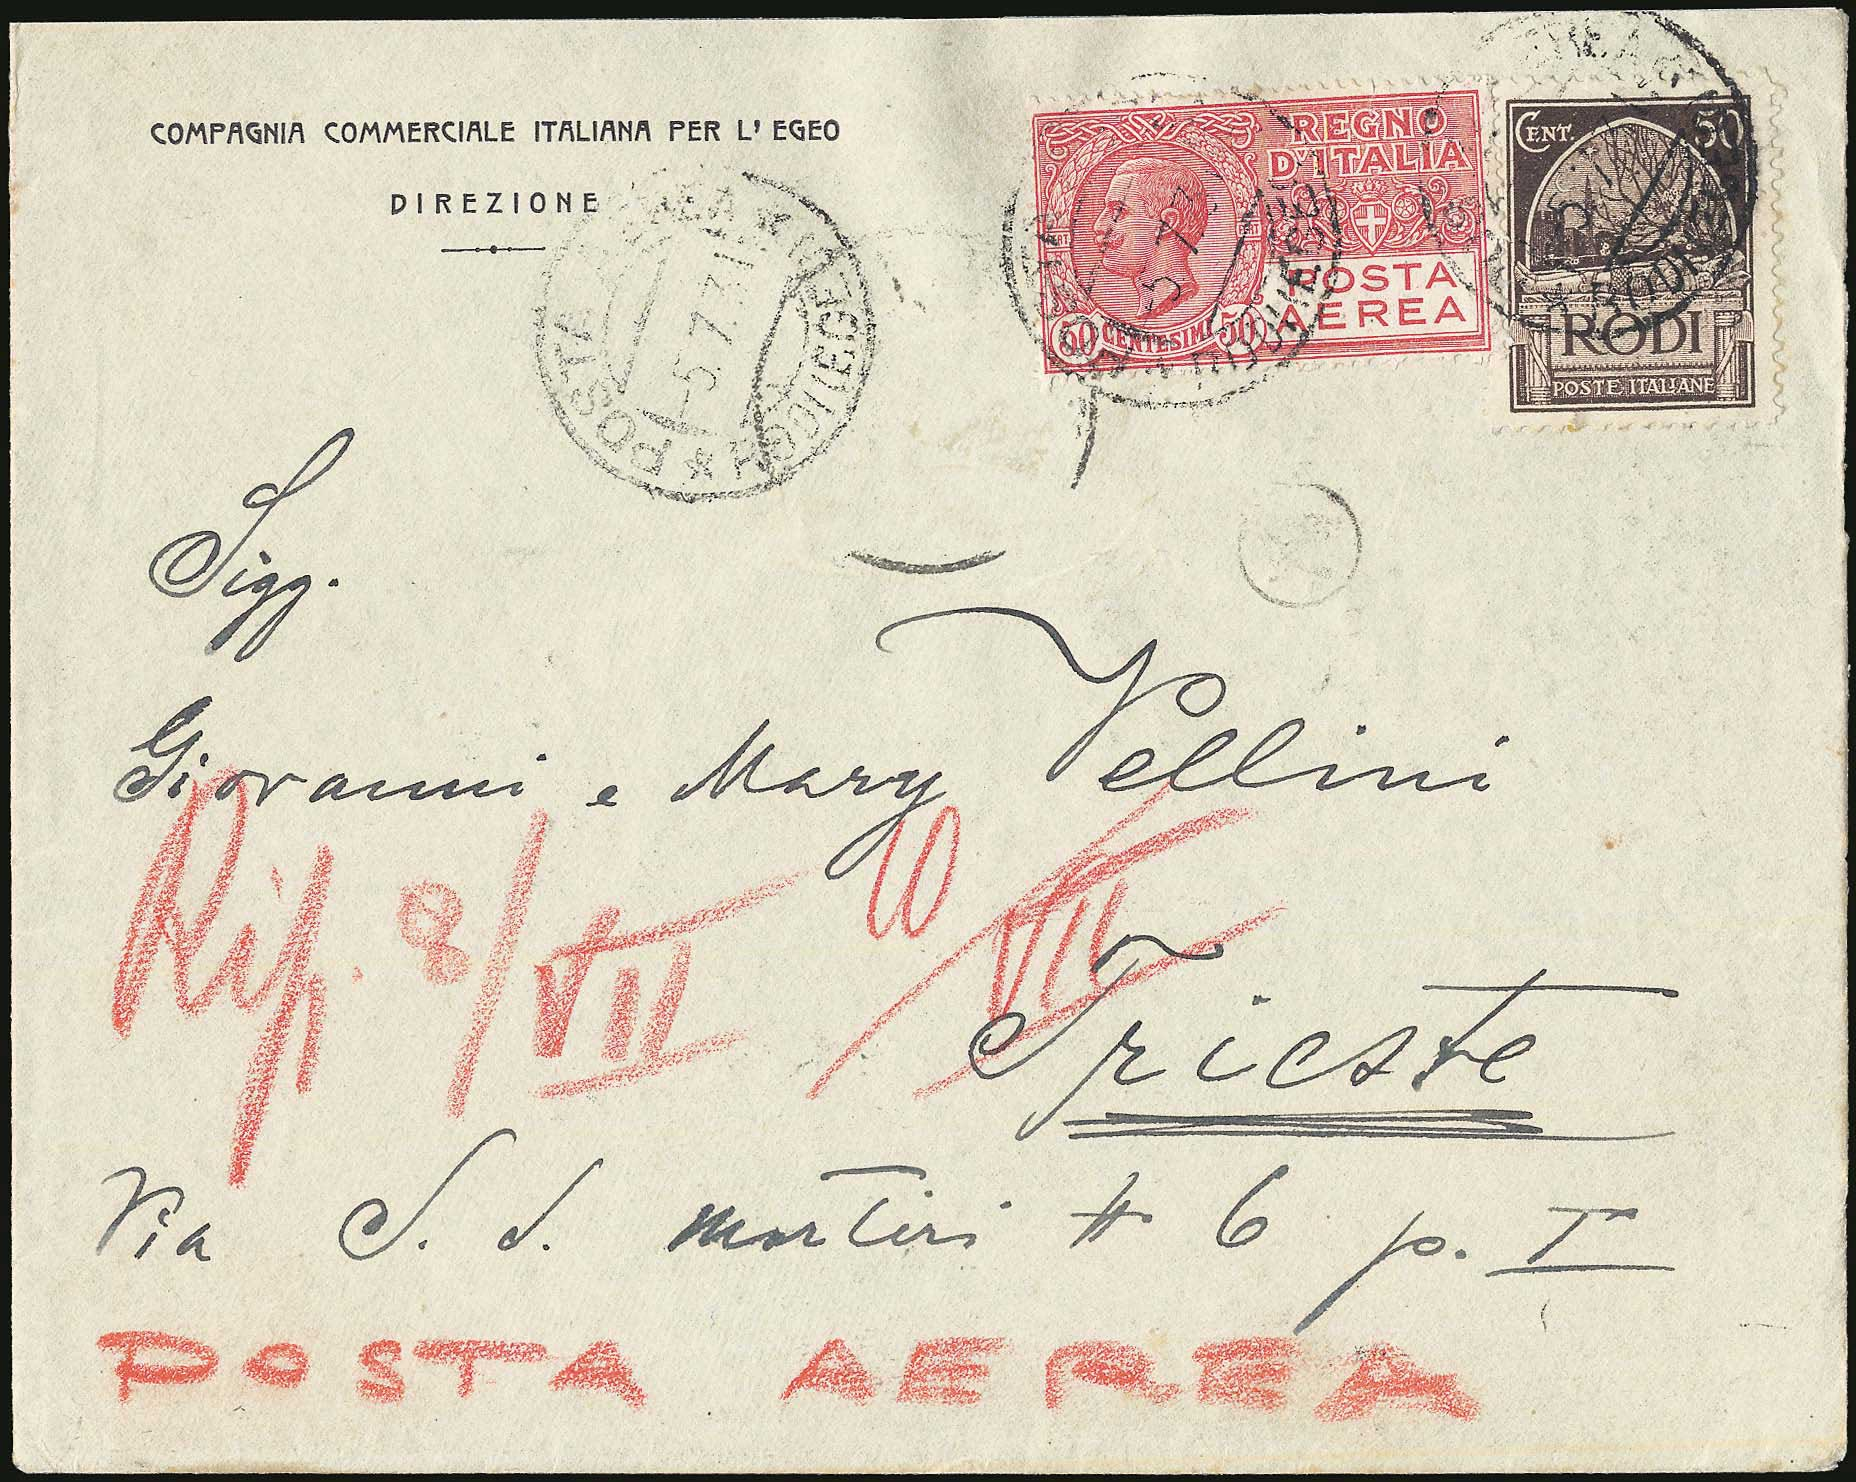 Lot 661 - Dodecanese italian dodecanese - italian post office issues -  A. Karamitsos Postal & Live Internet Auction 680 General Philatelic Auction